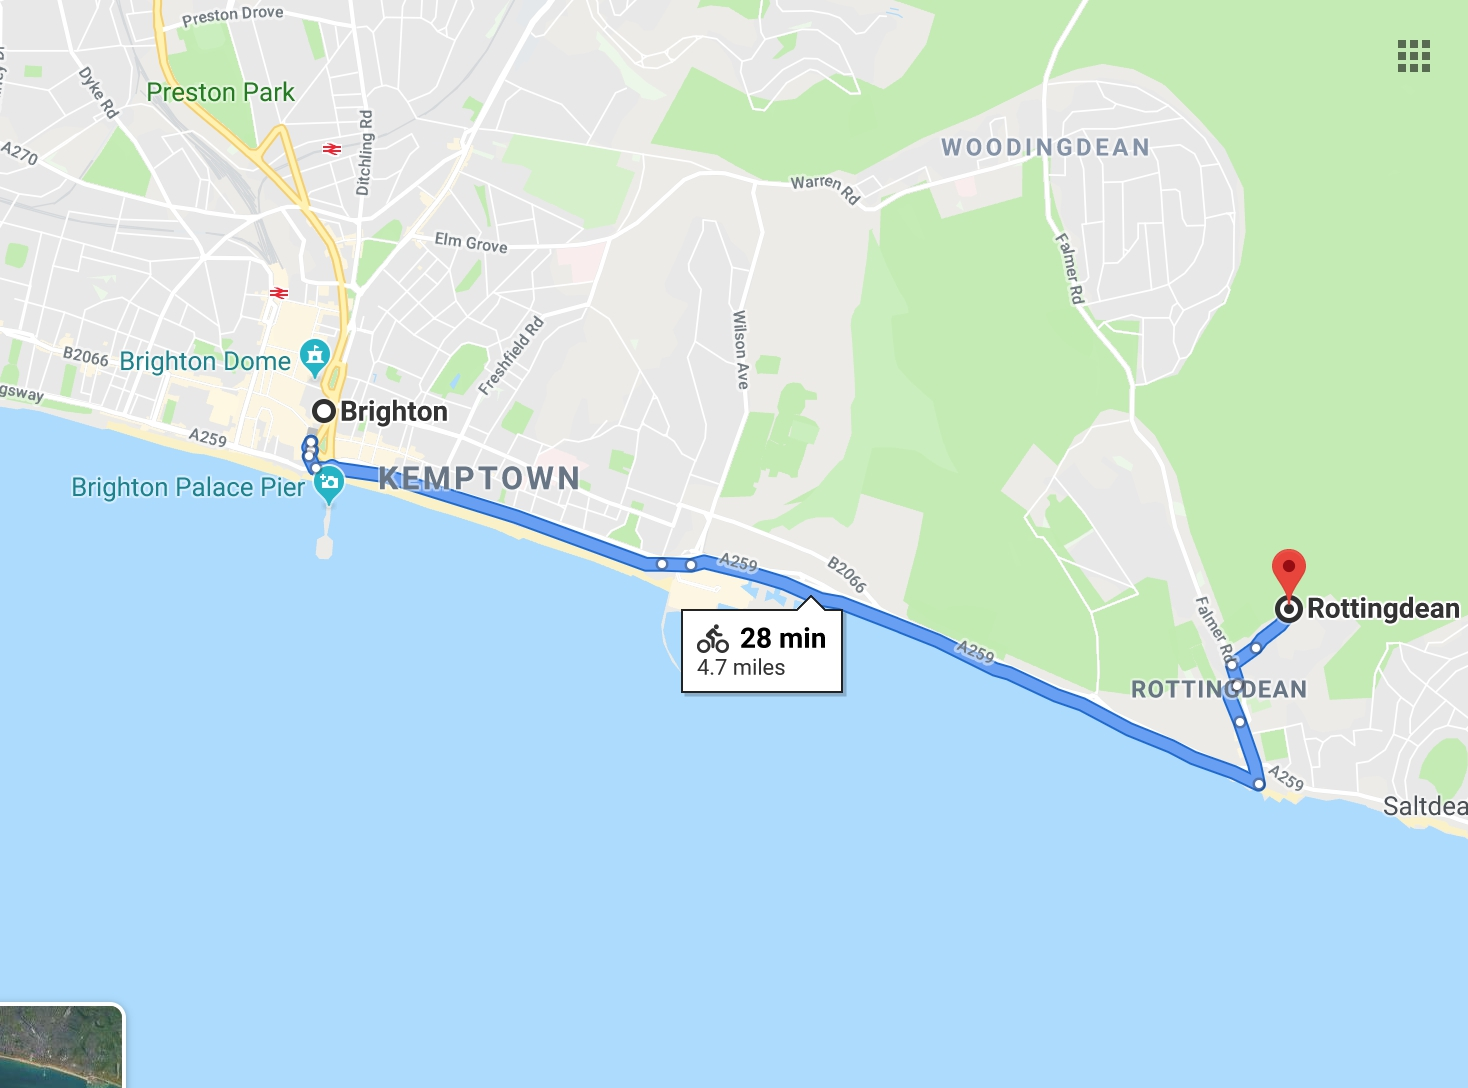 Coastal Rottingdean Route